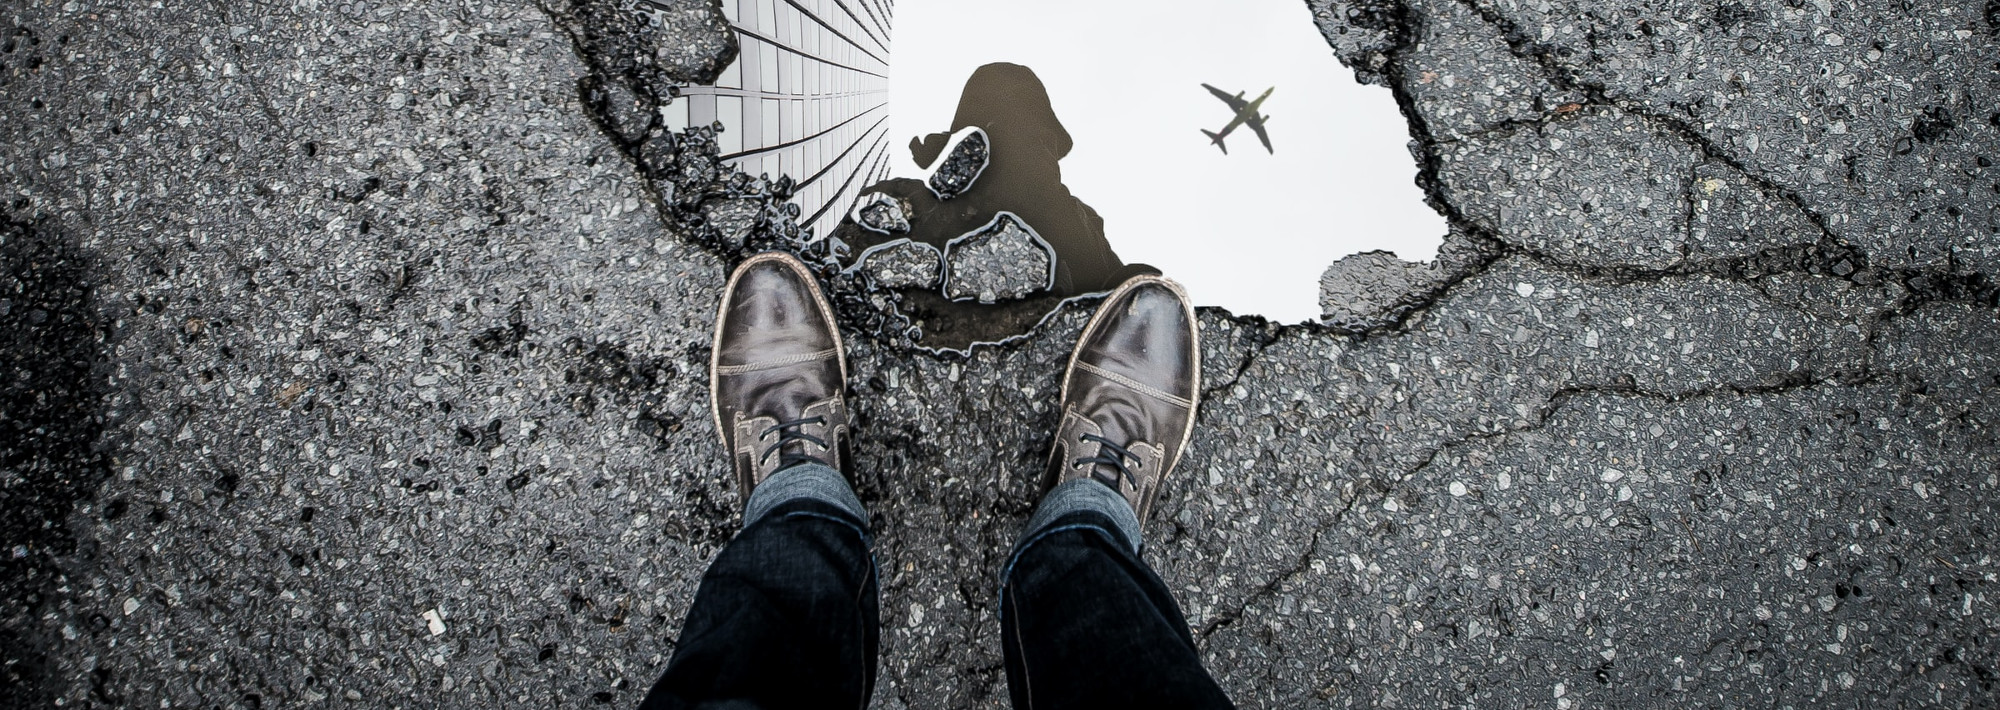 A person standing on a street, looking down at a puddle on the ground. The sky is reflected in the puddle.